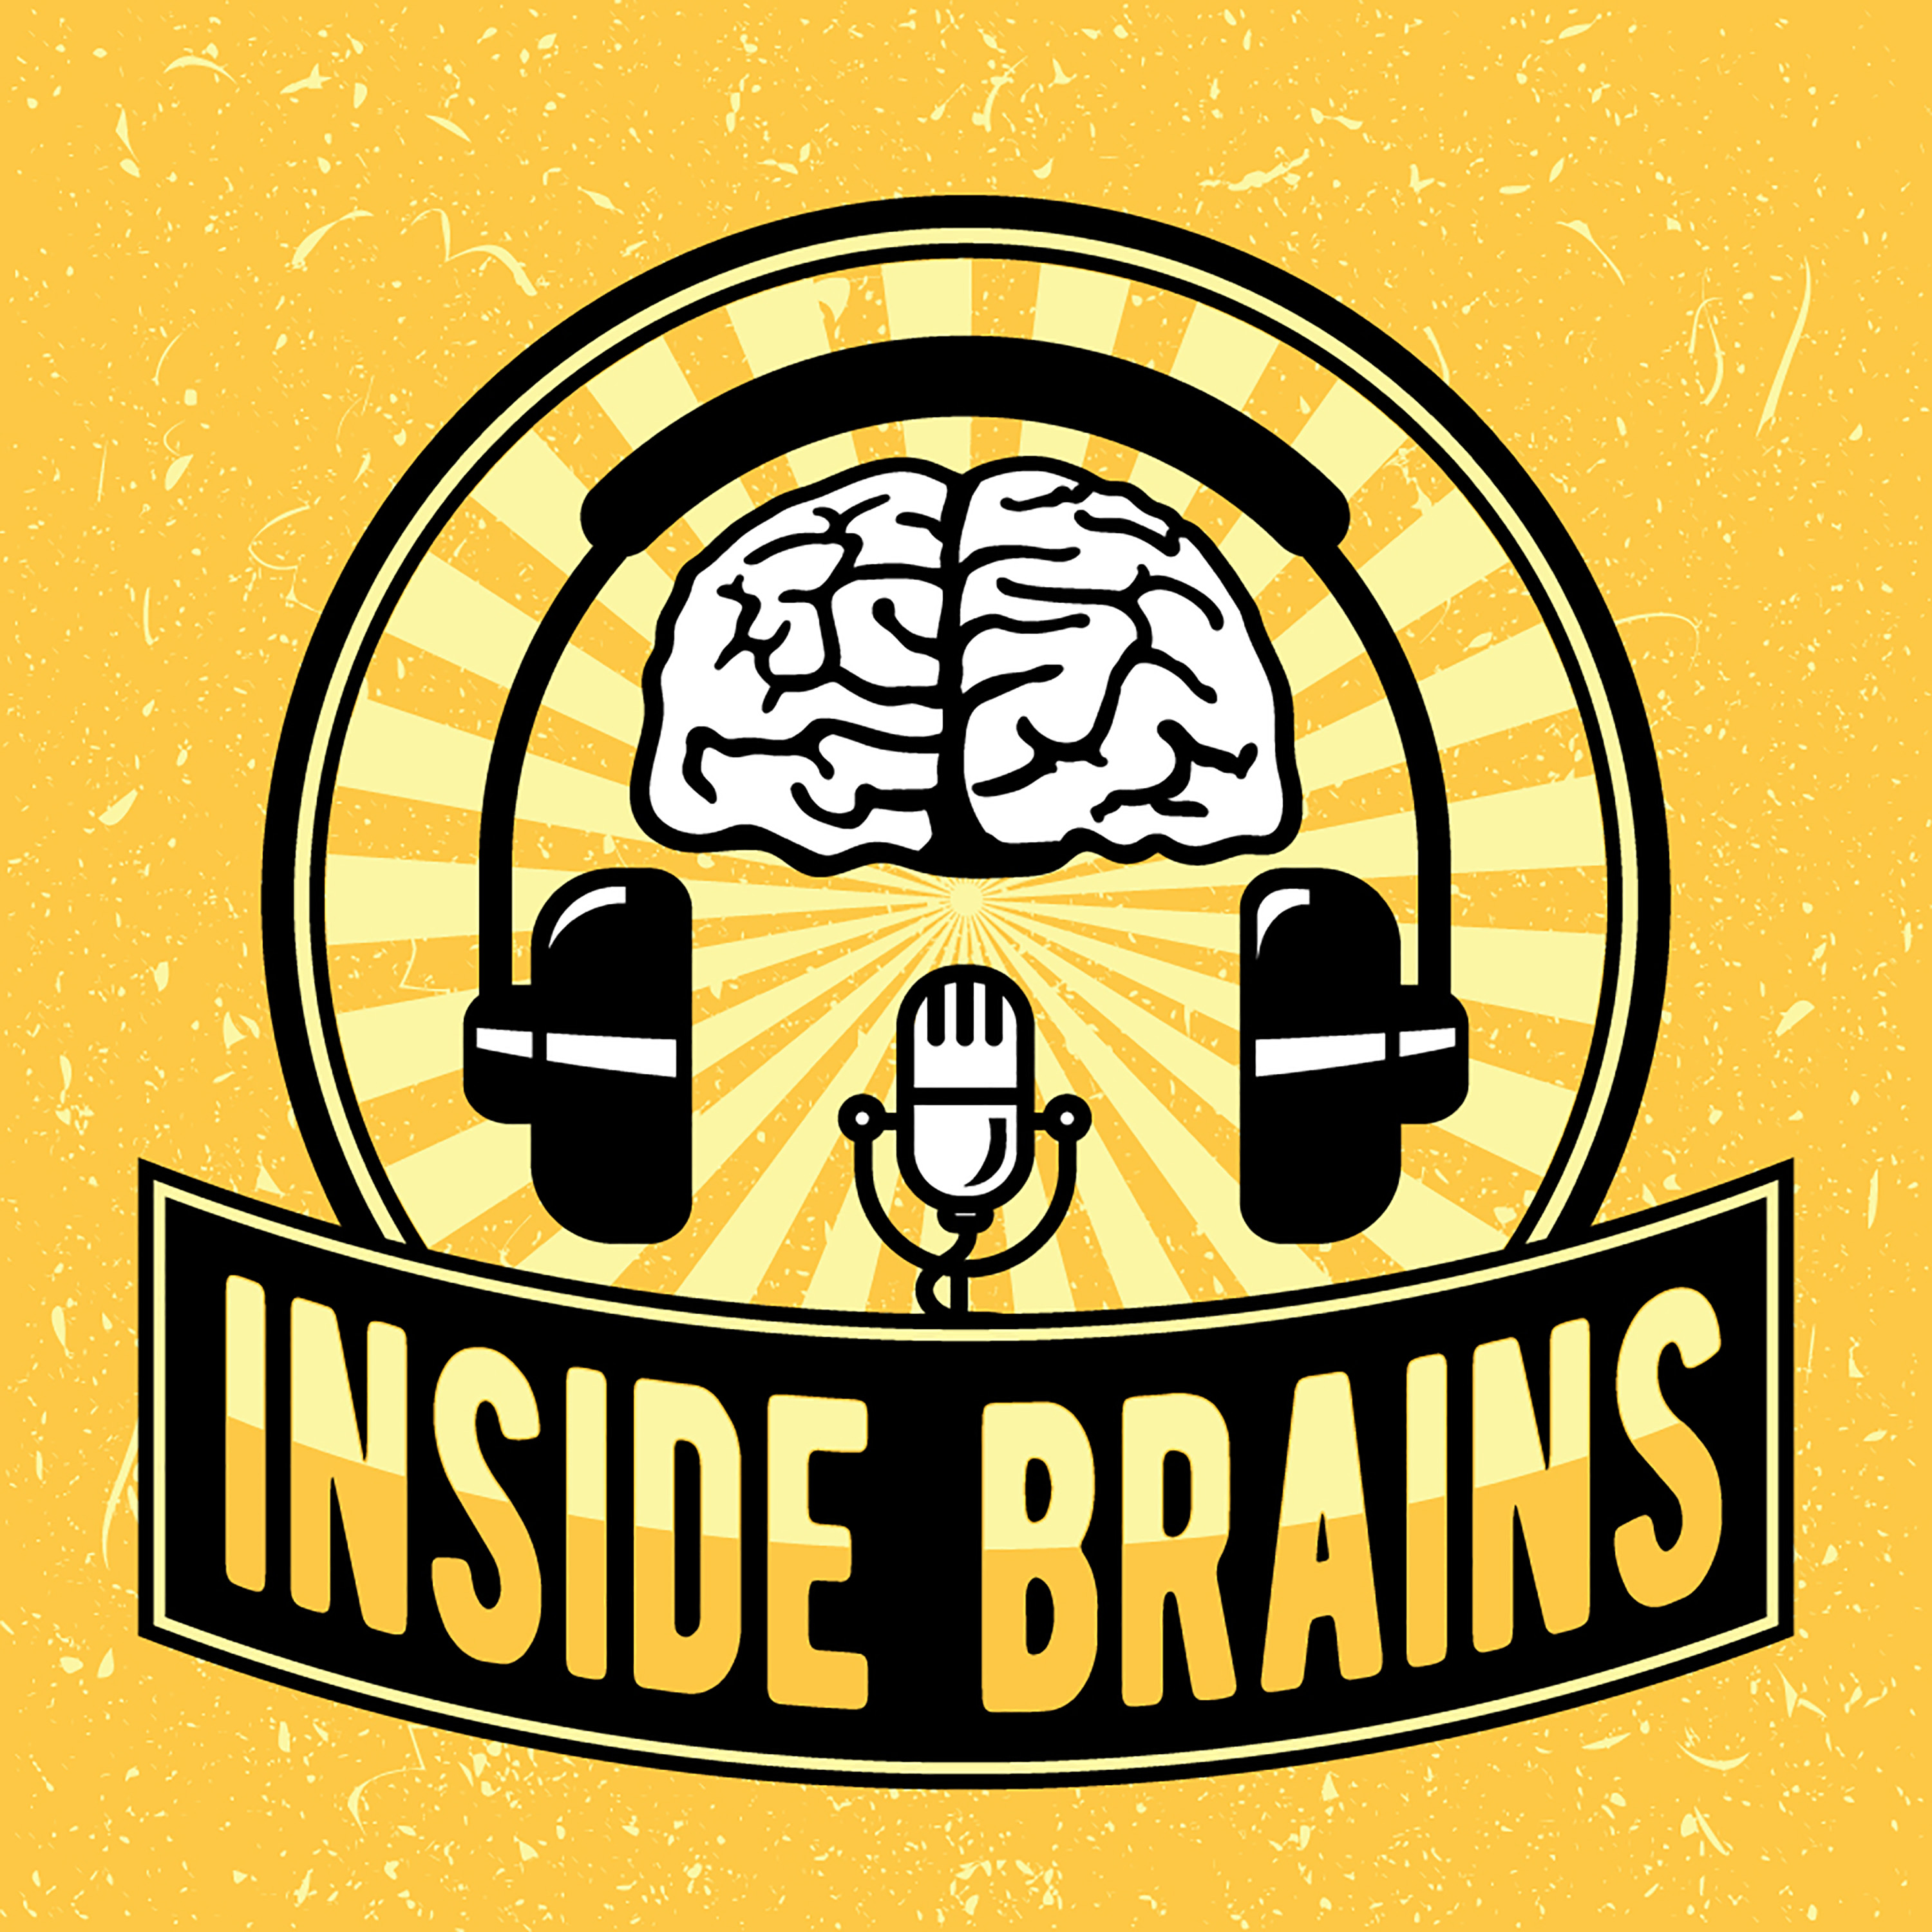 Inside Brains